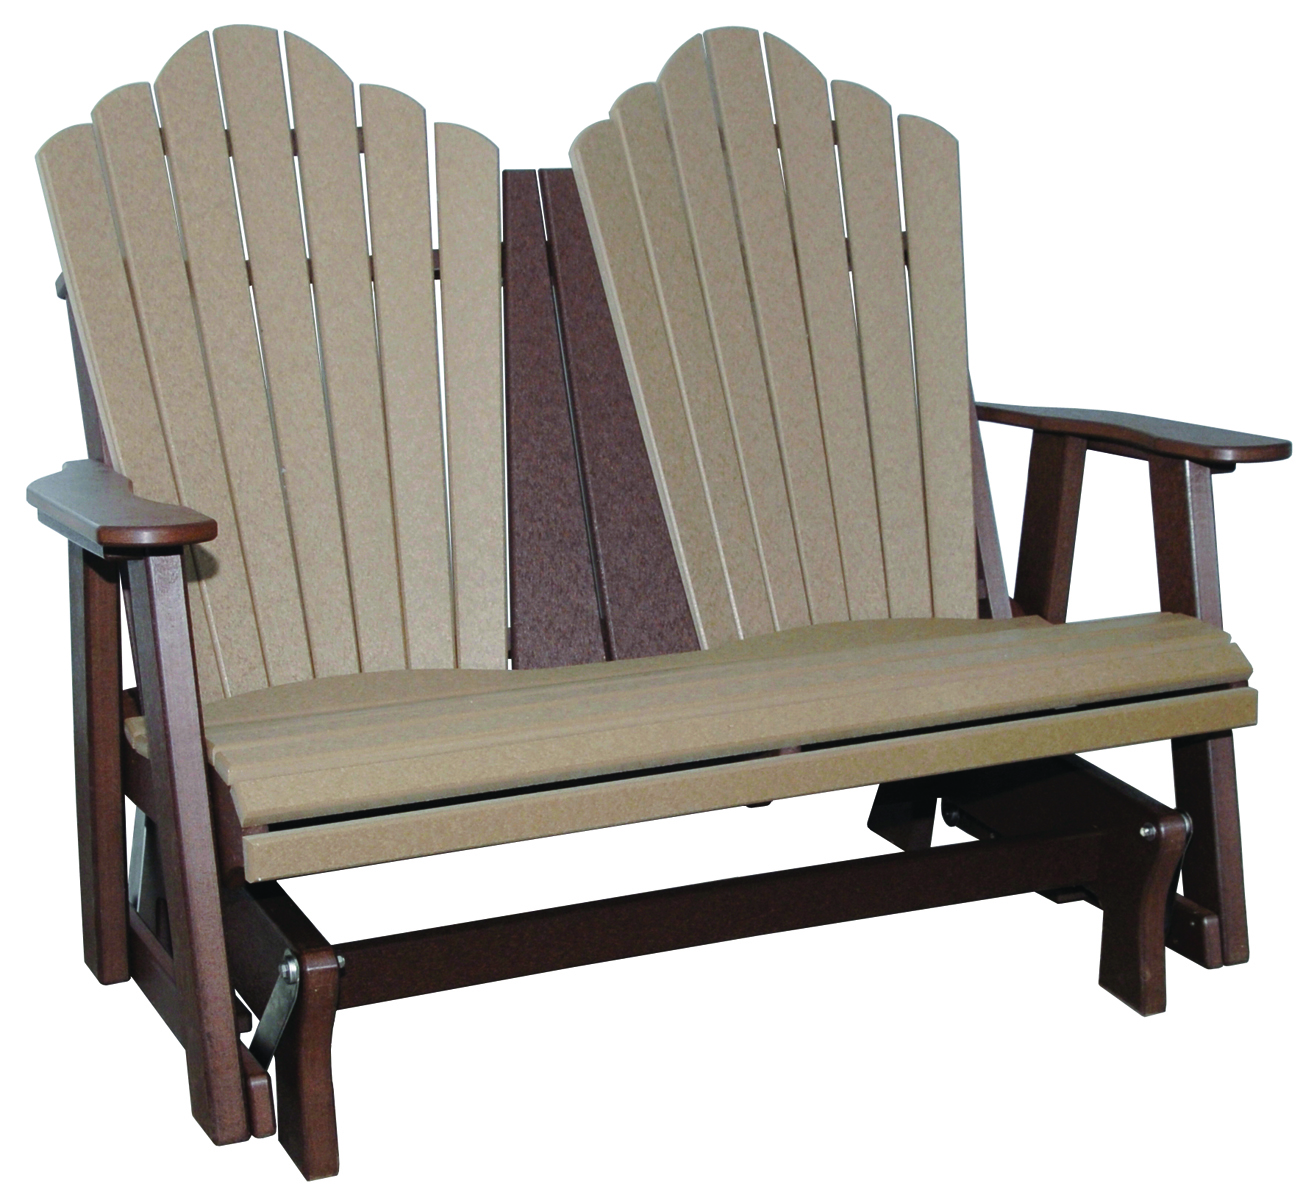 outdoor patio furniture for spring